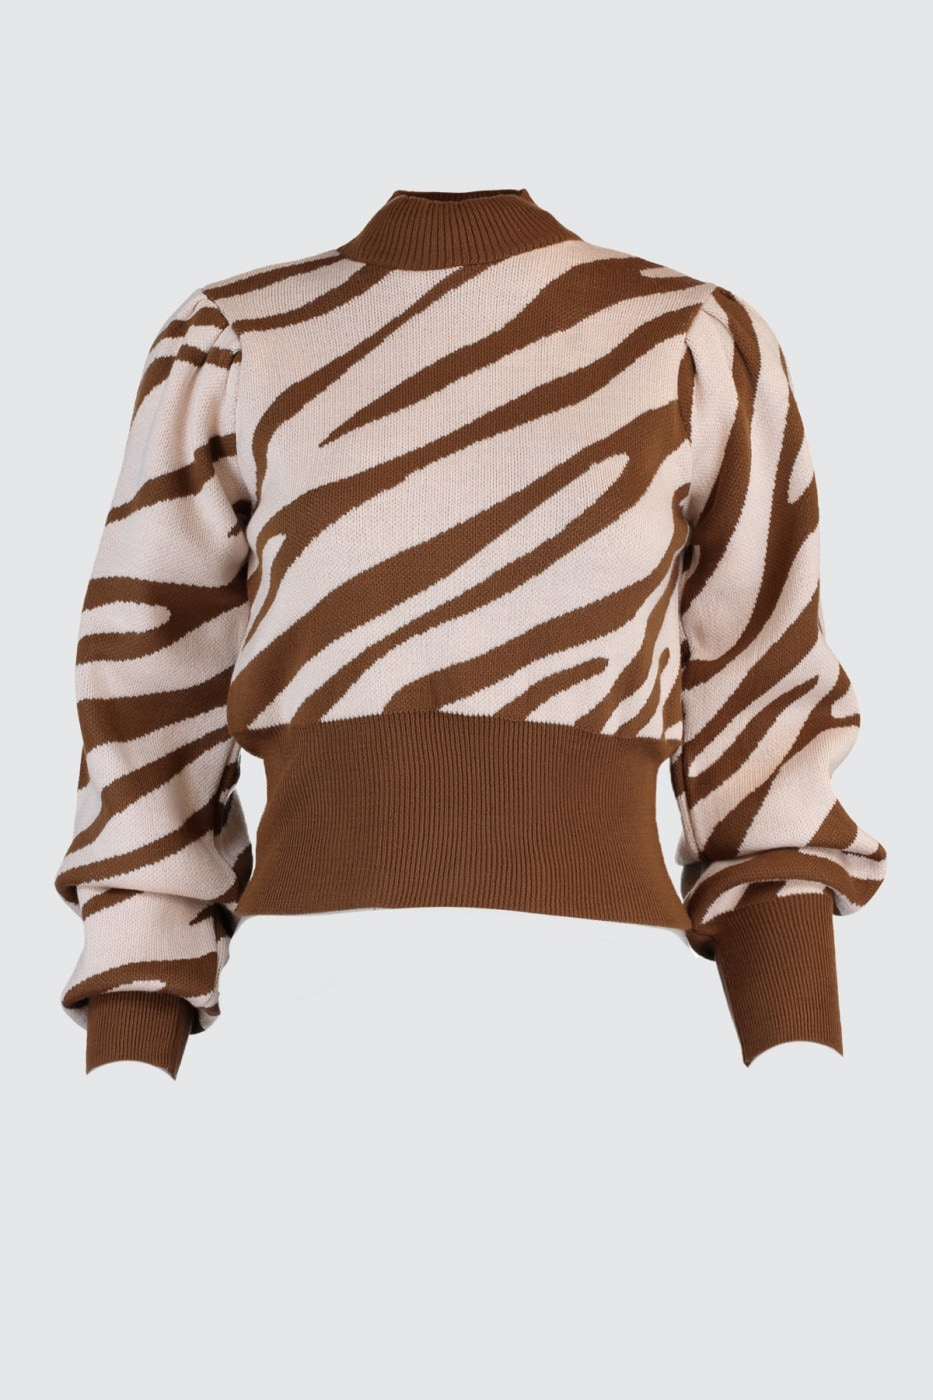 Trendyol Brown Zebra Patterned Knitwear Sweater